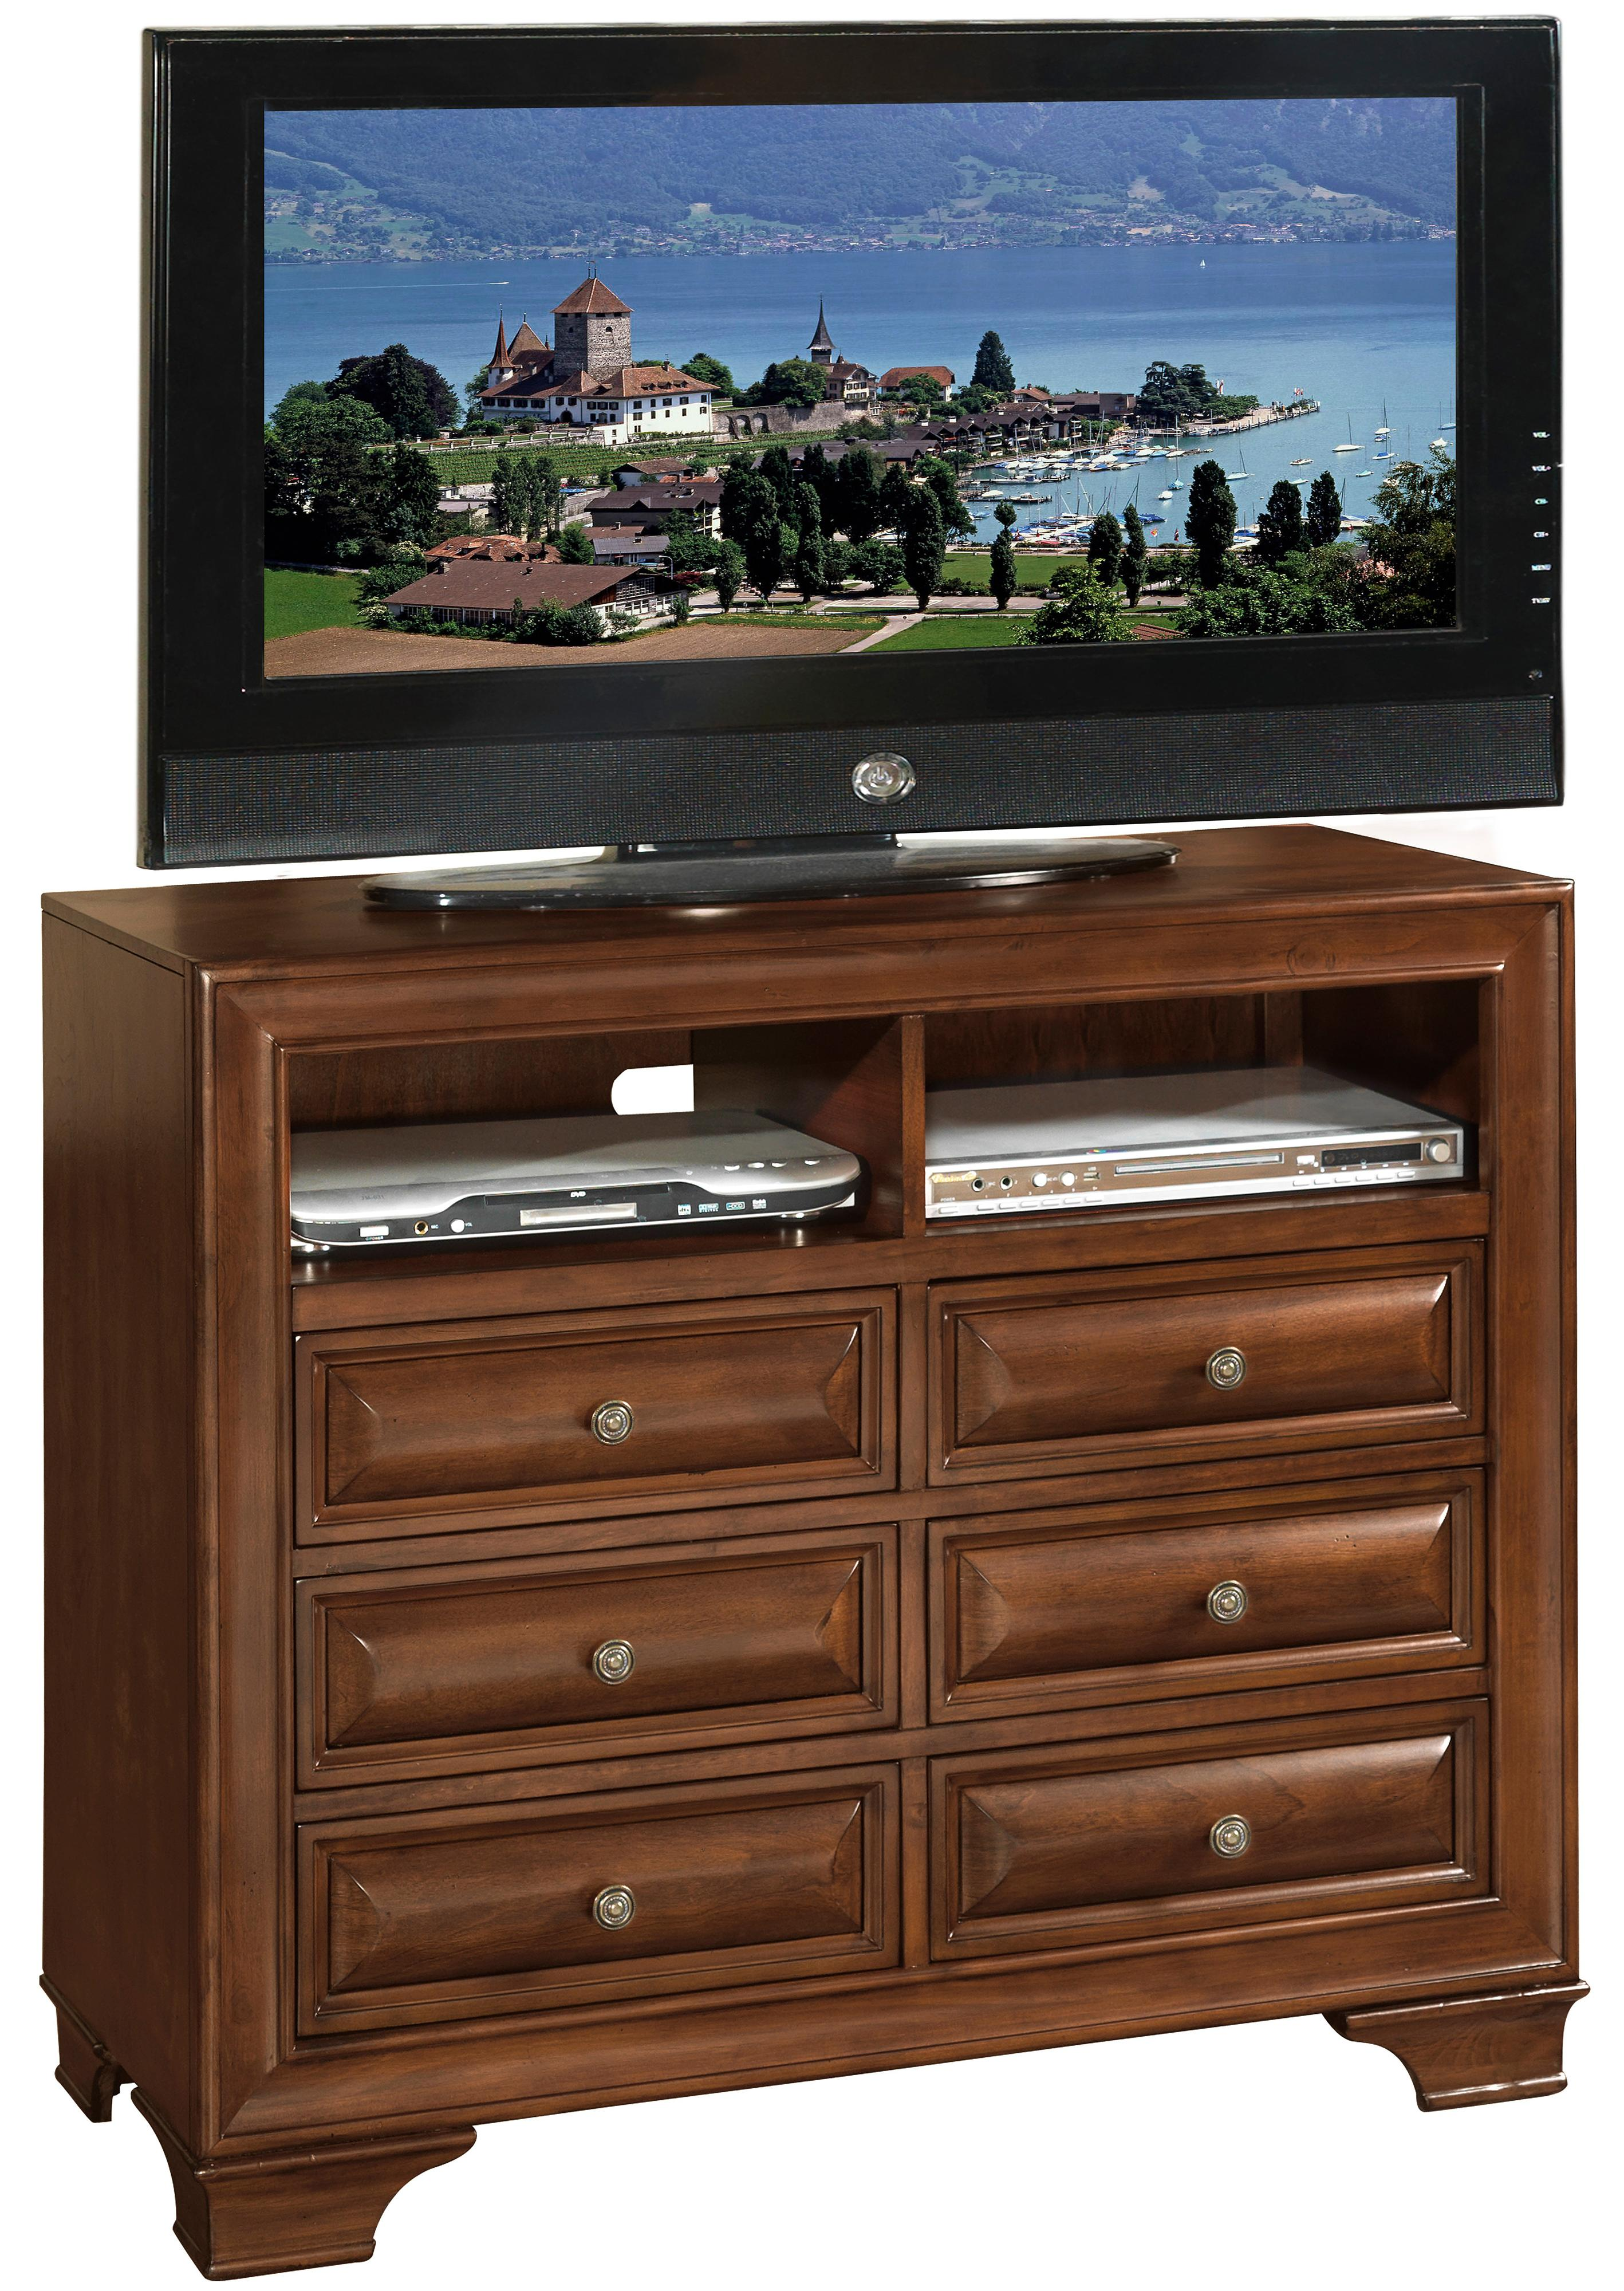 Lifestyle 1192 Media Chest - Item Number: C1192A-070-6DCH